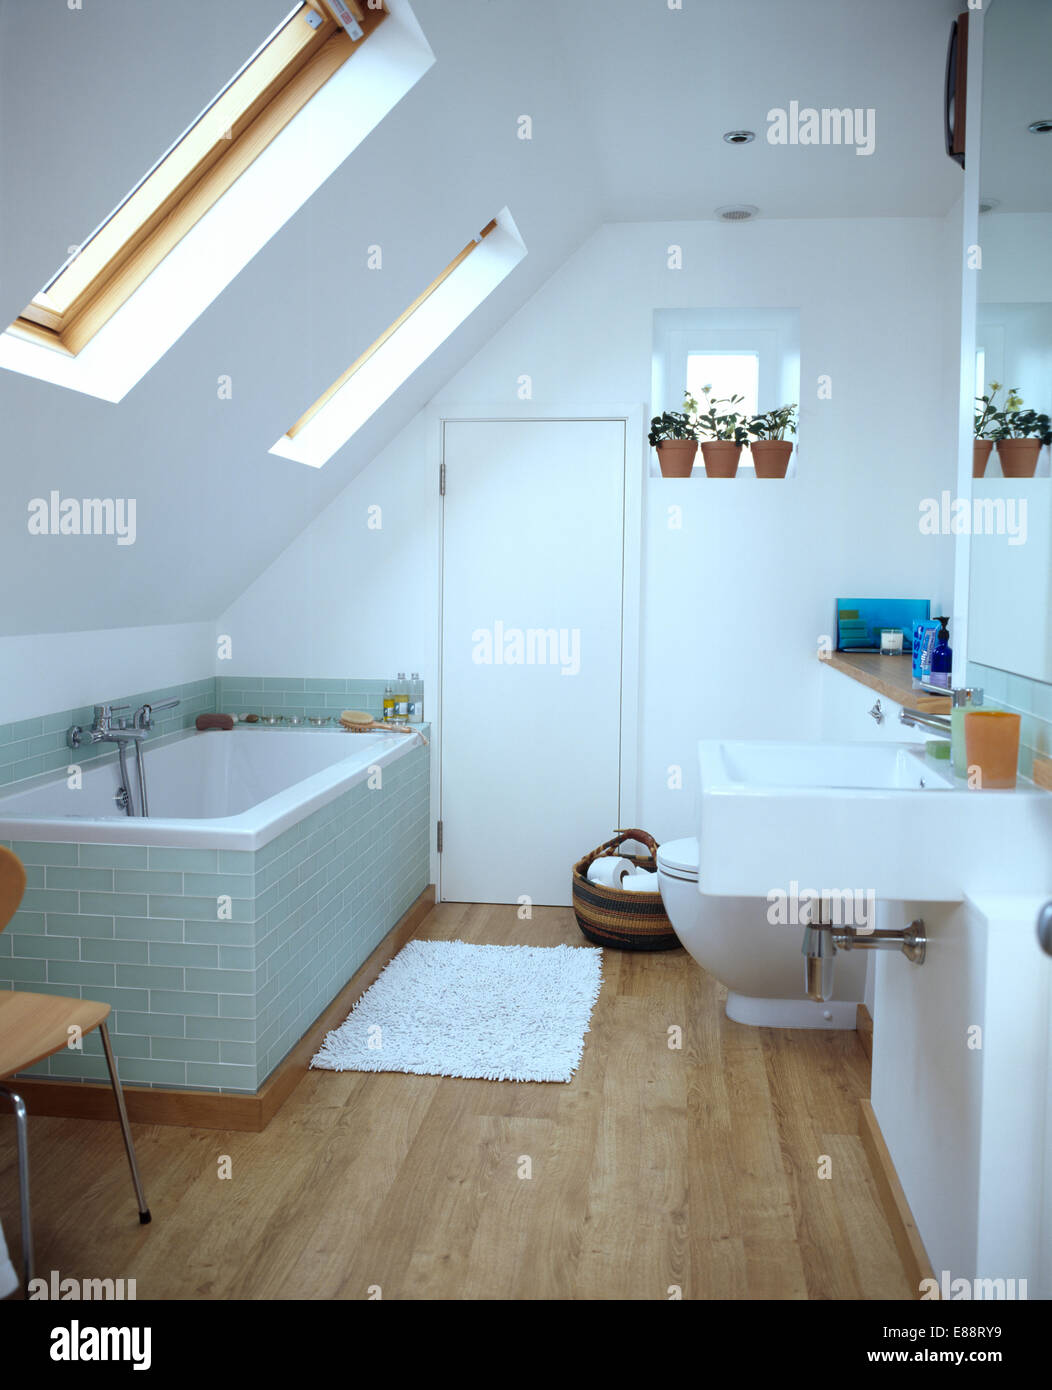 Glass tiled surround on bath in modern white loft conversion ...